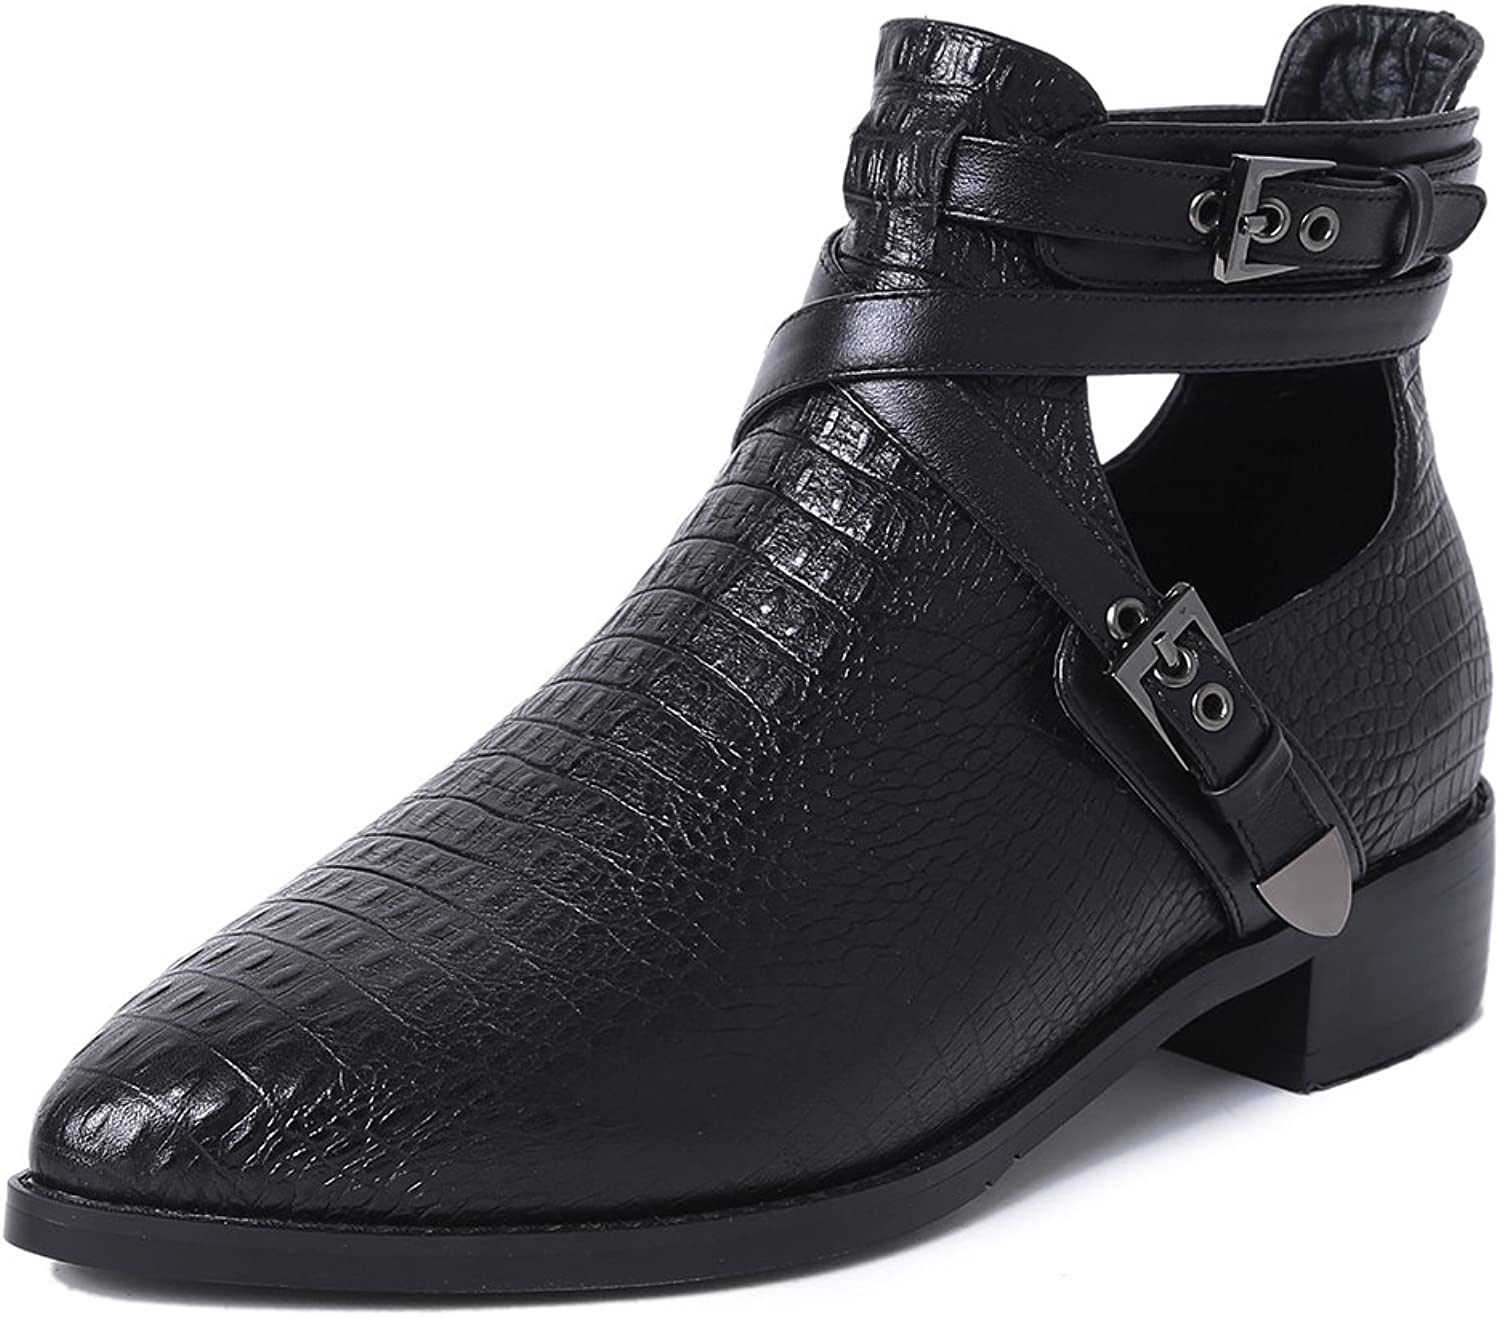 A-BUYBEA Women's Pointed Toe Tuscany Croc Embossed Leather Buckle Strap Ankle Boots